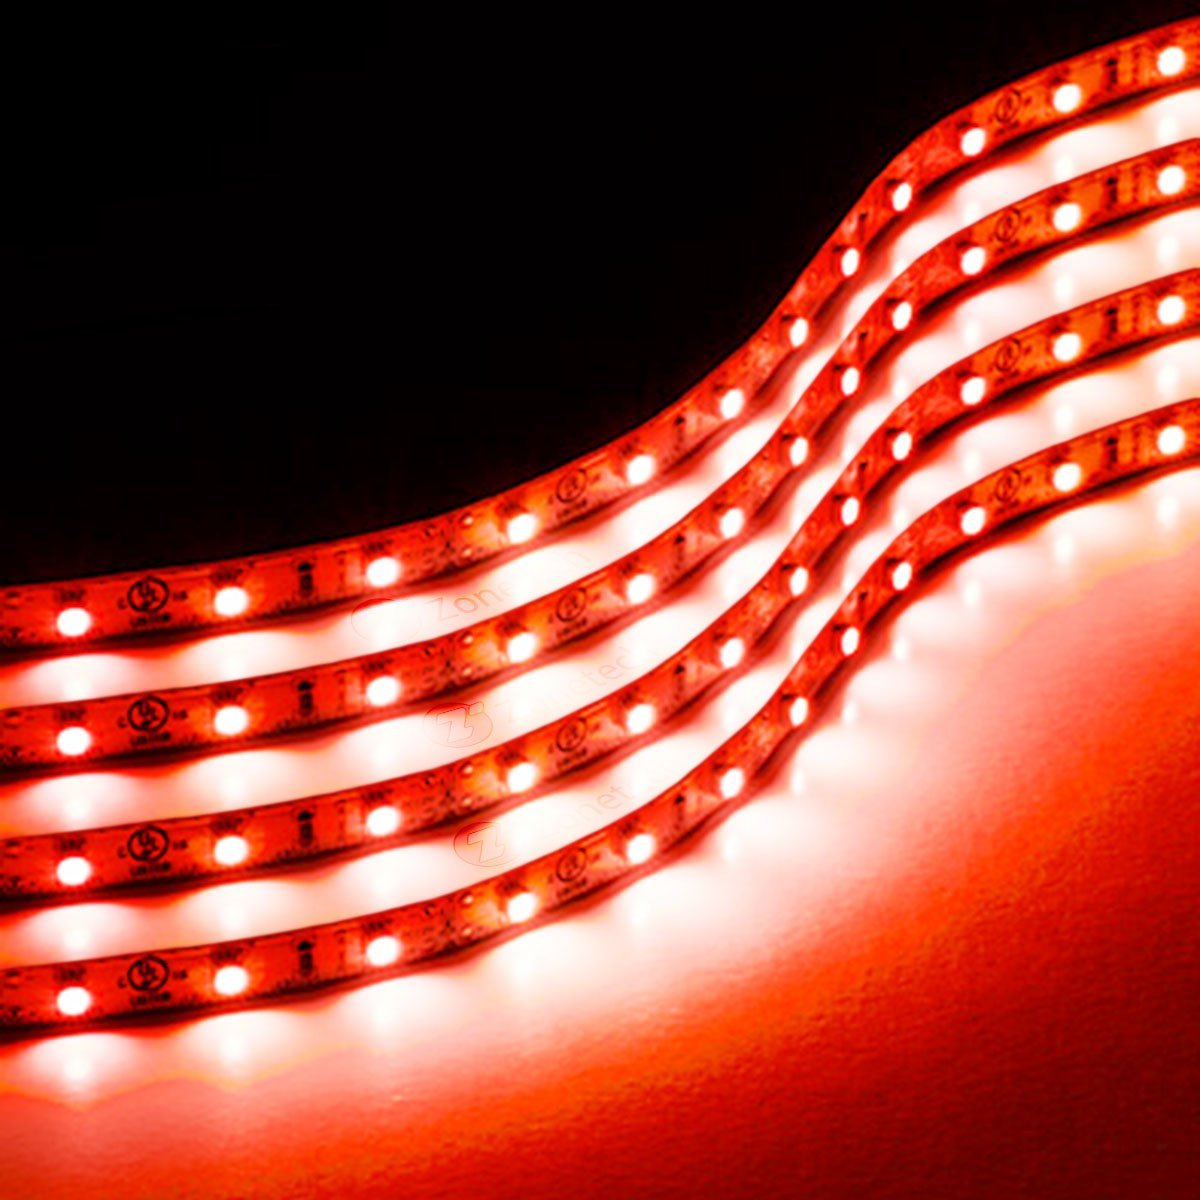 Led Strip Waterproof Zone Tech 30cm Flexible Waterproof Red Light Strips 4 Pack Led Car Flexible Waterproof Red Light Strips